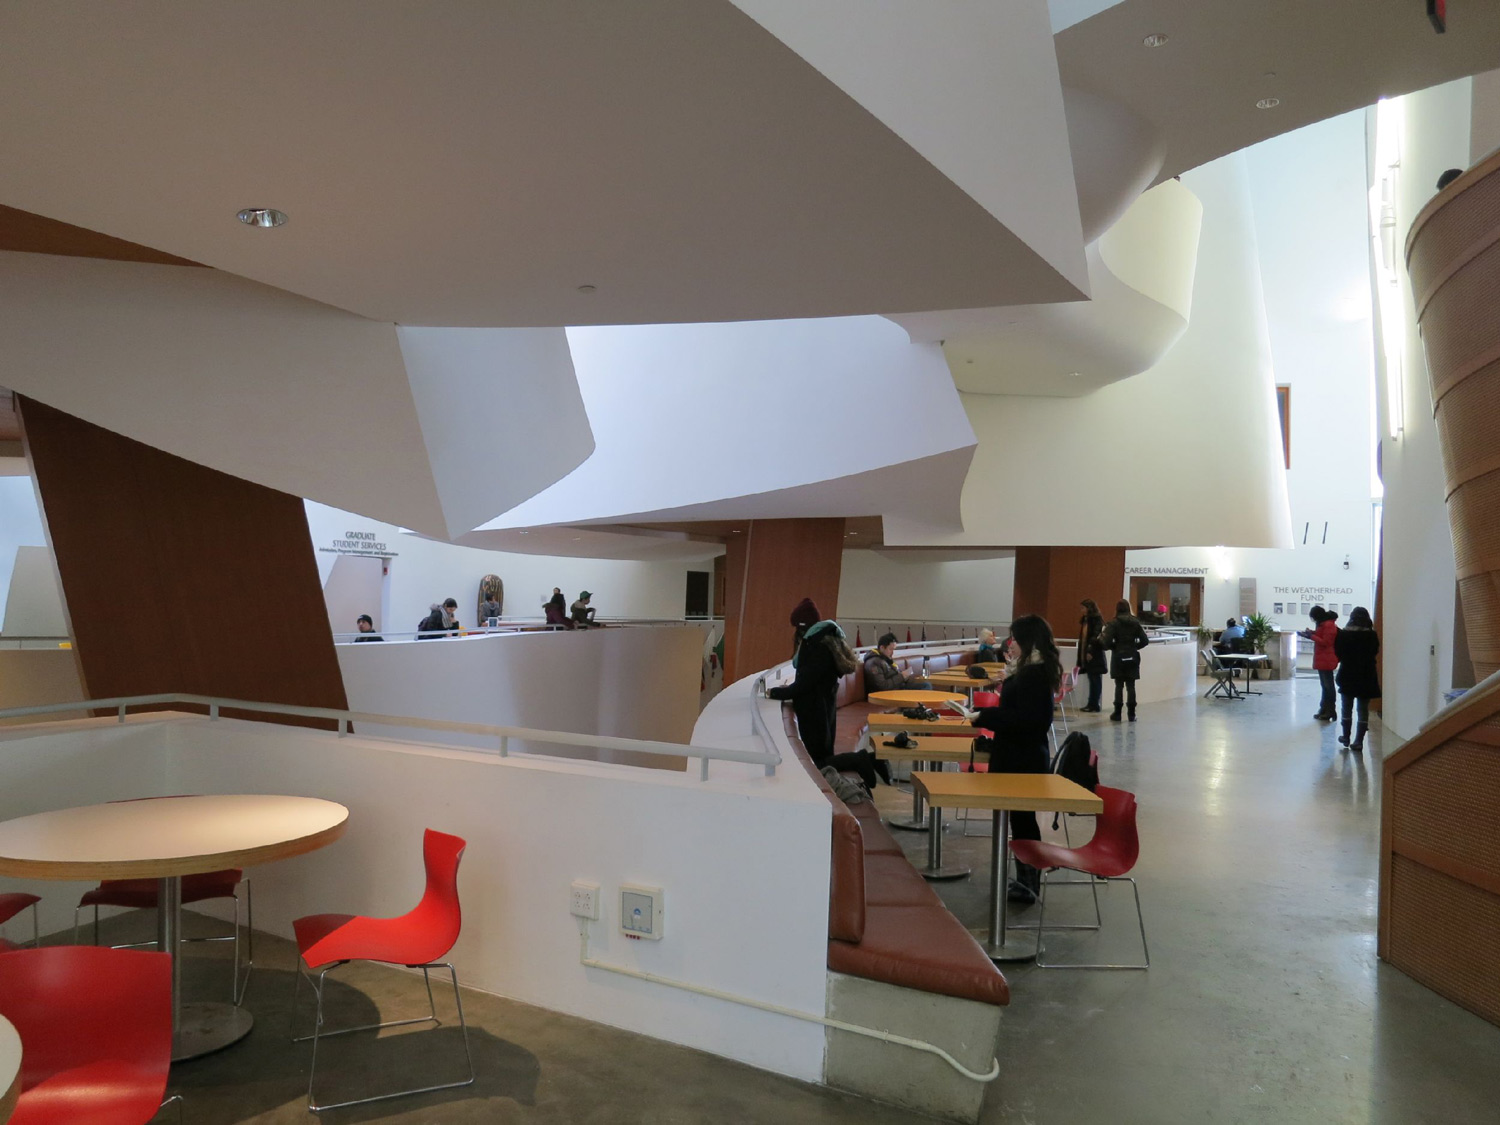 S16_Class-Trip_Gehry-Cleveland-1907-optimized.jpg